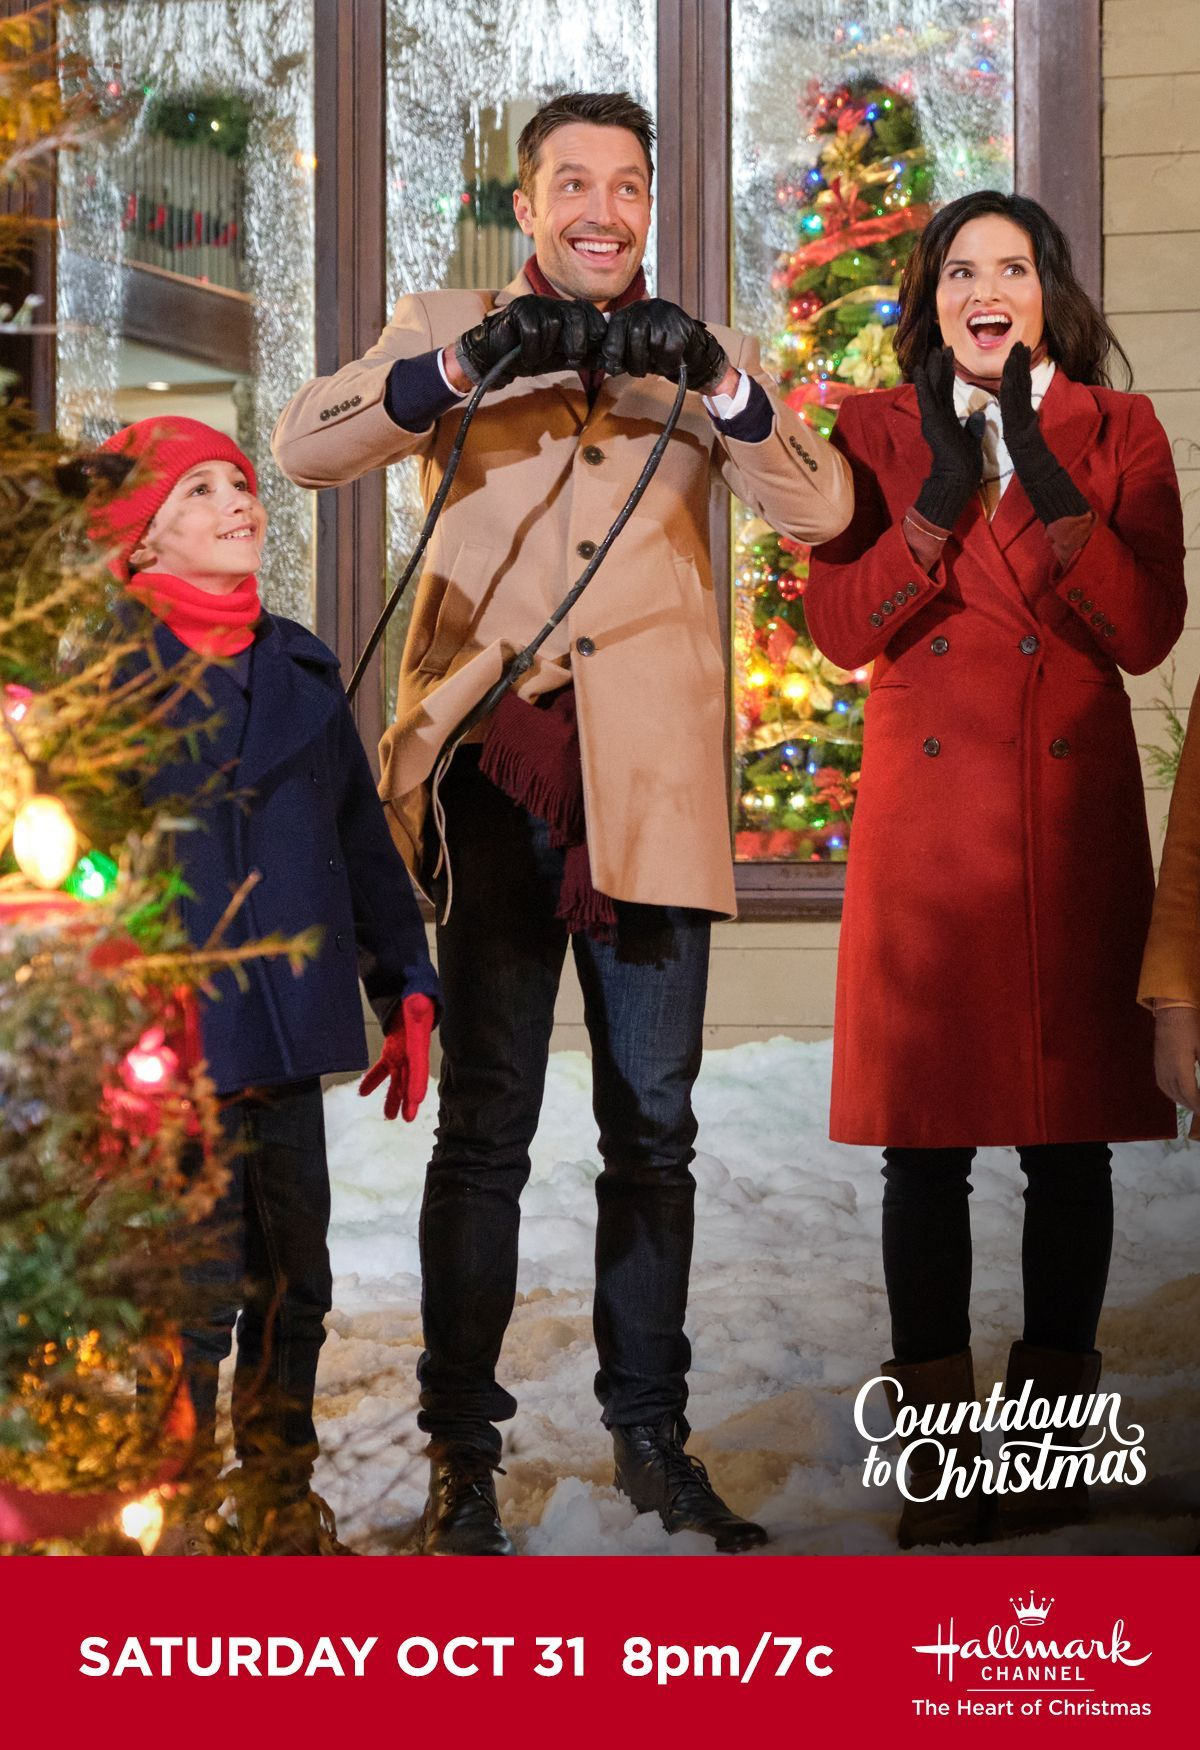 Hallmark Channel Your Home For The Holidays Presents An All New Original Movie Premiere Featuring K In 2020 Hallmark Christmas Movies Hallmark Movies Hallmark Channel